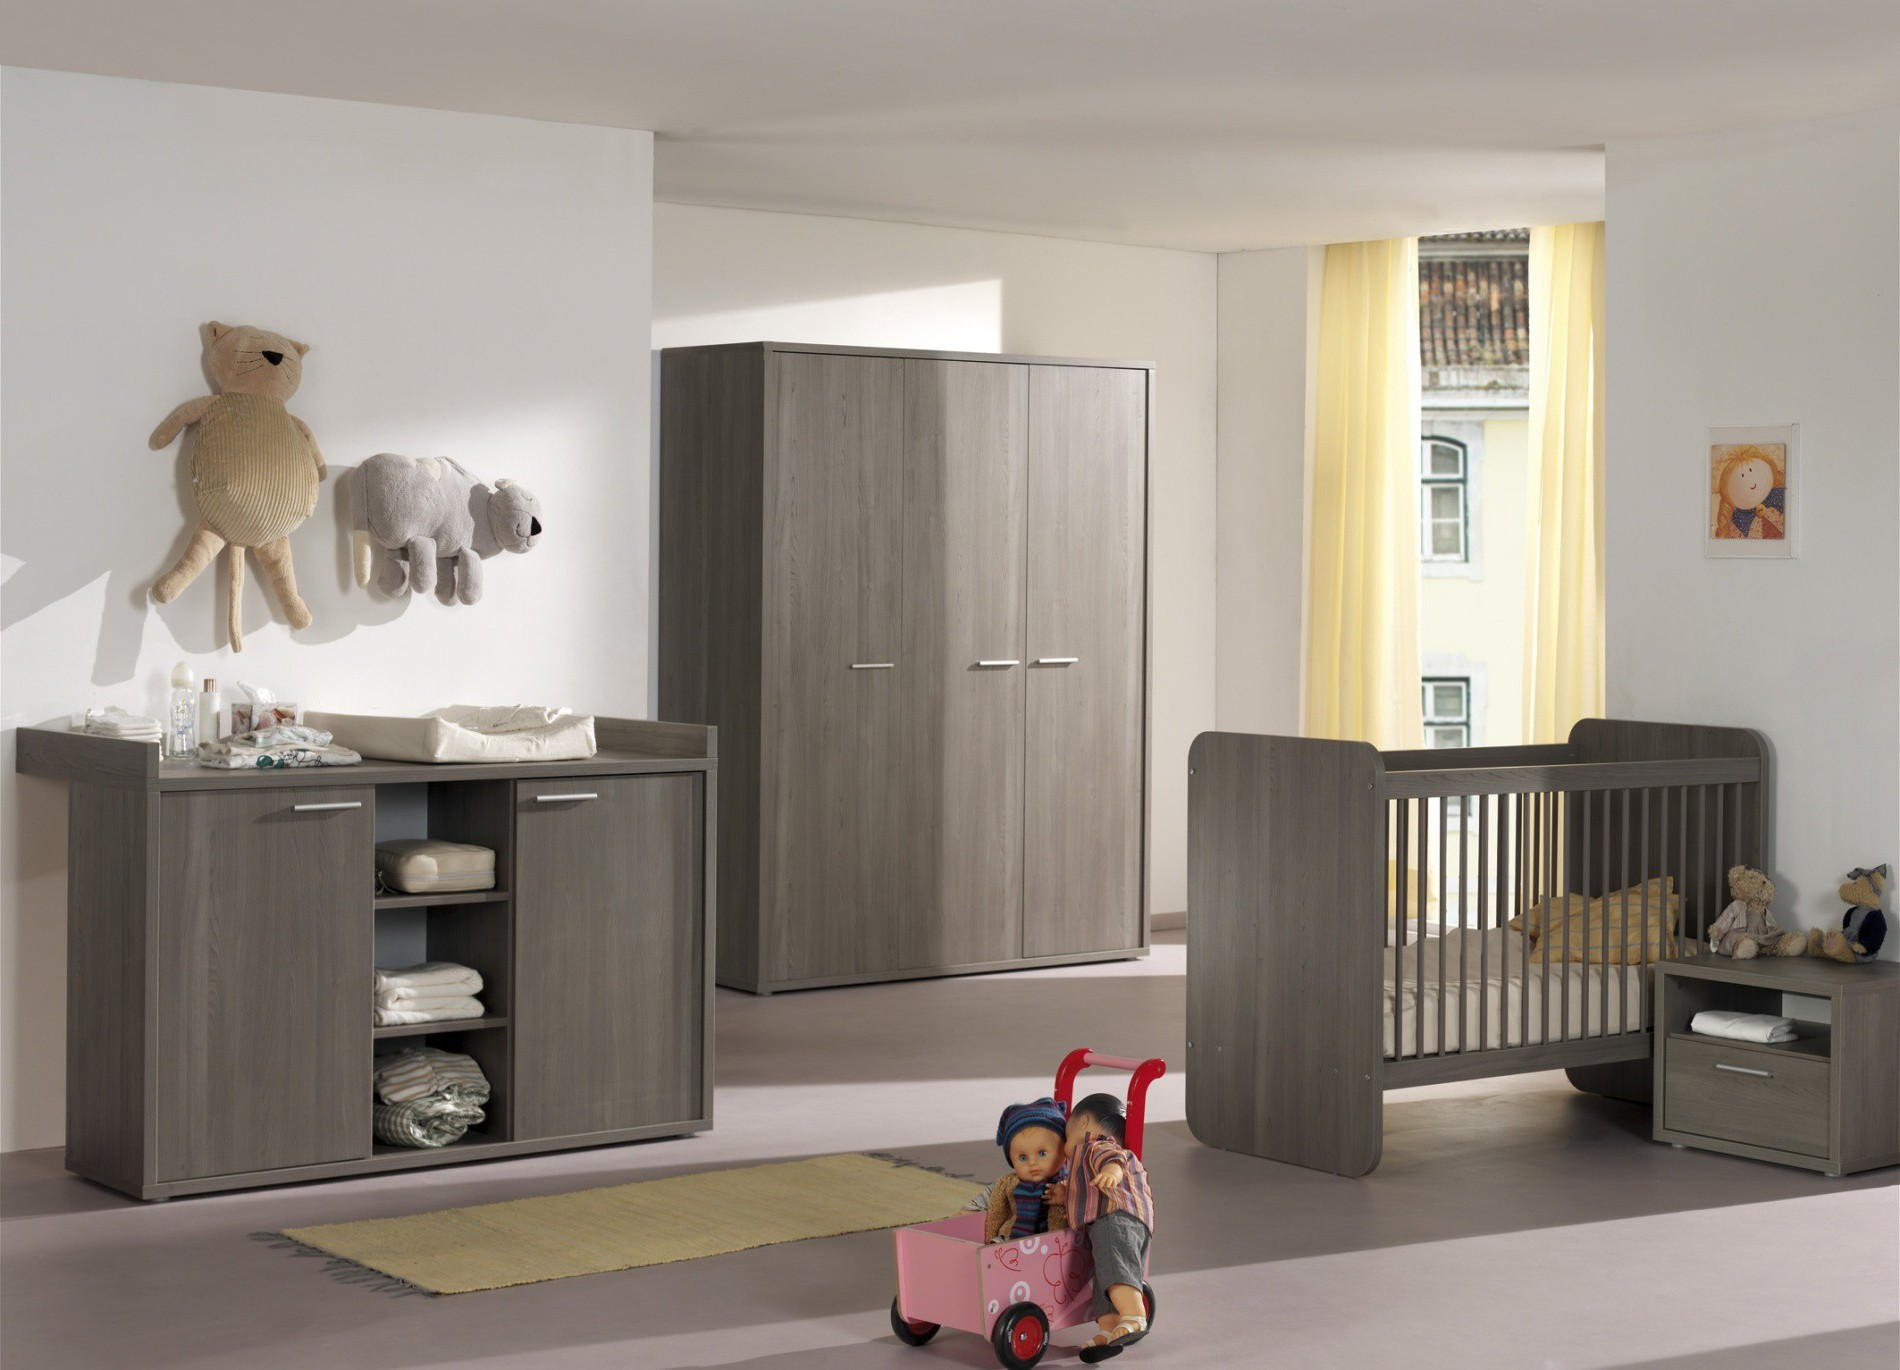 top chambre evolutive bebe ikea with chambre complete bebe ikea. Black Bedroom Furniture Sets. Home Design Ideas